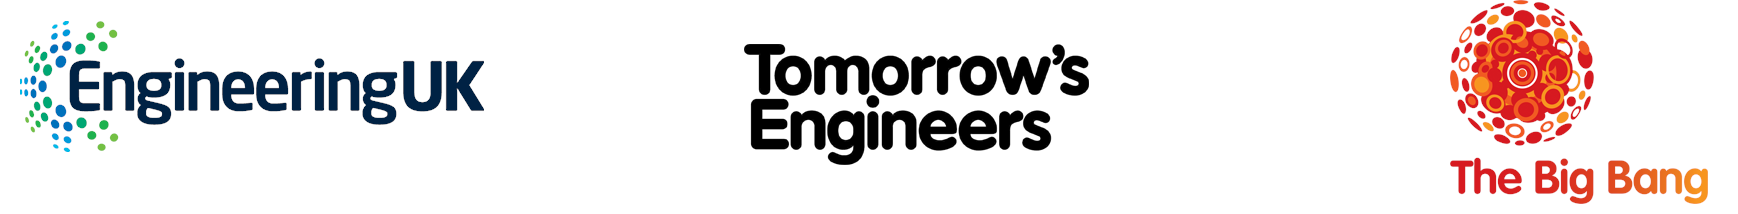 EngineeringUK | Volunteer portal